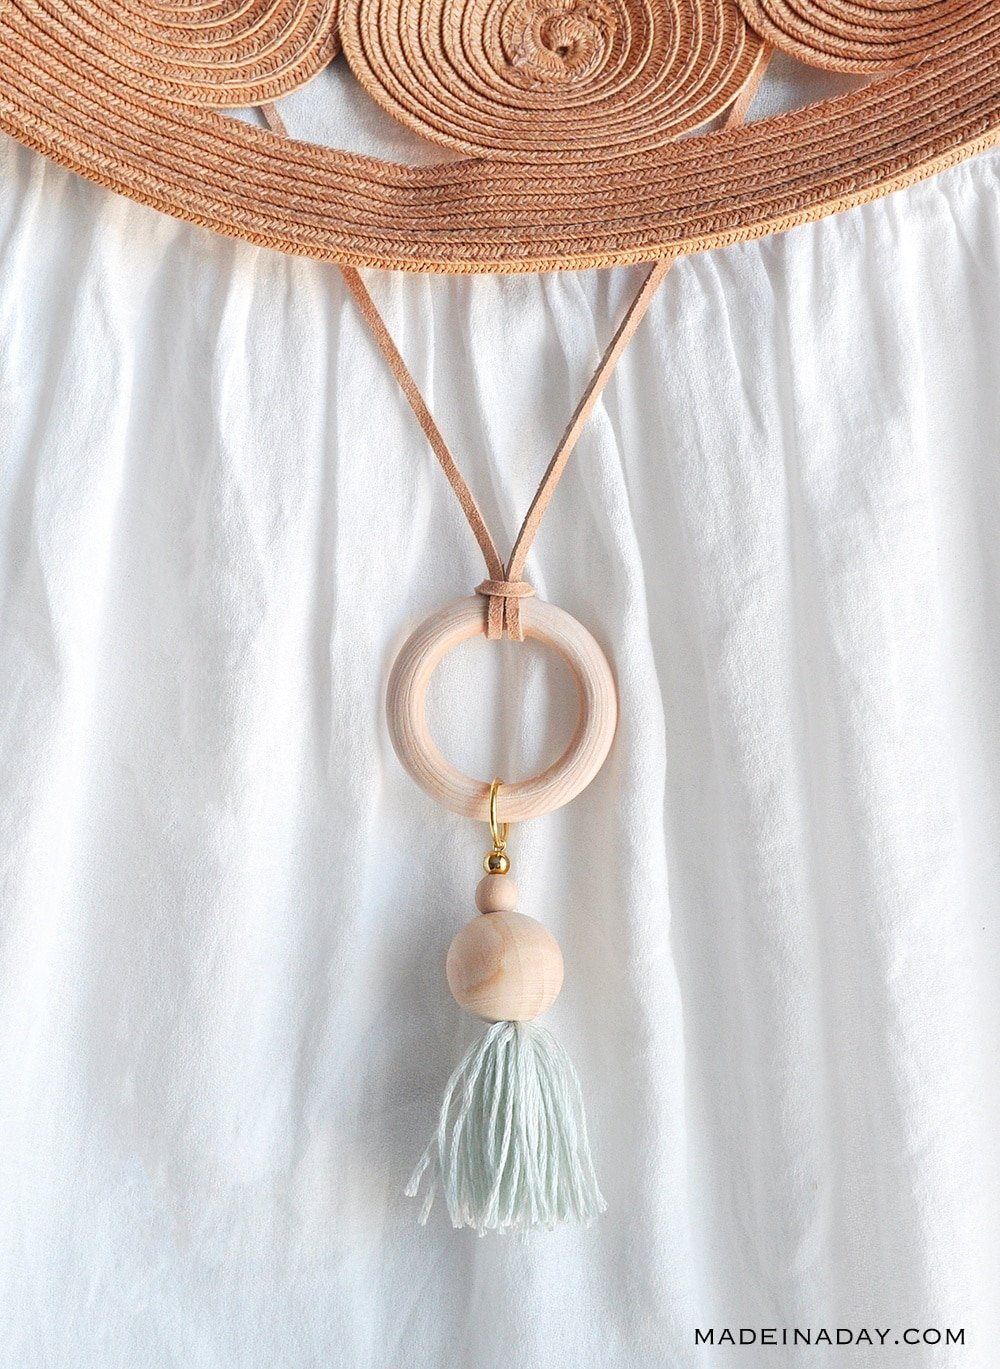 How to Make a Wood Bead Tassel Hoop Necklace